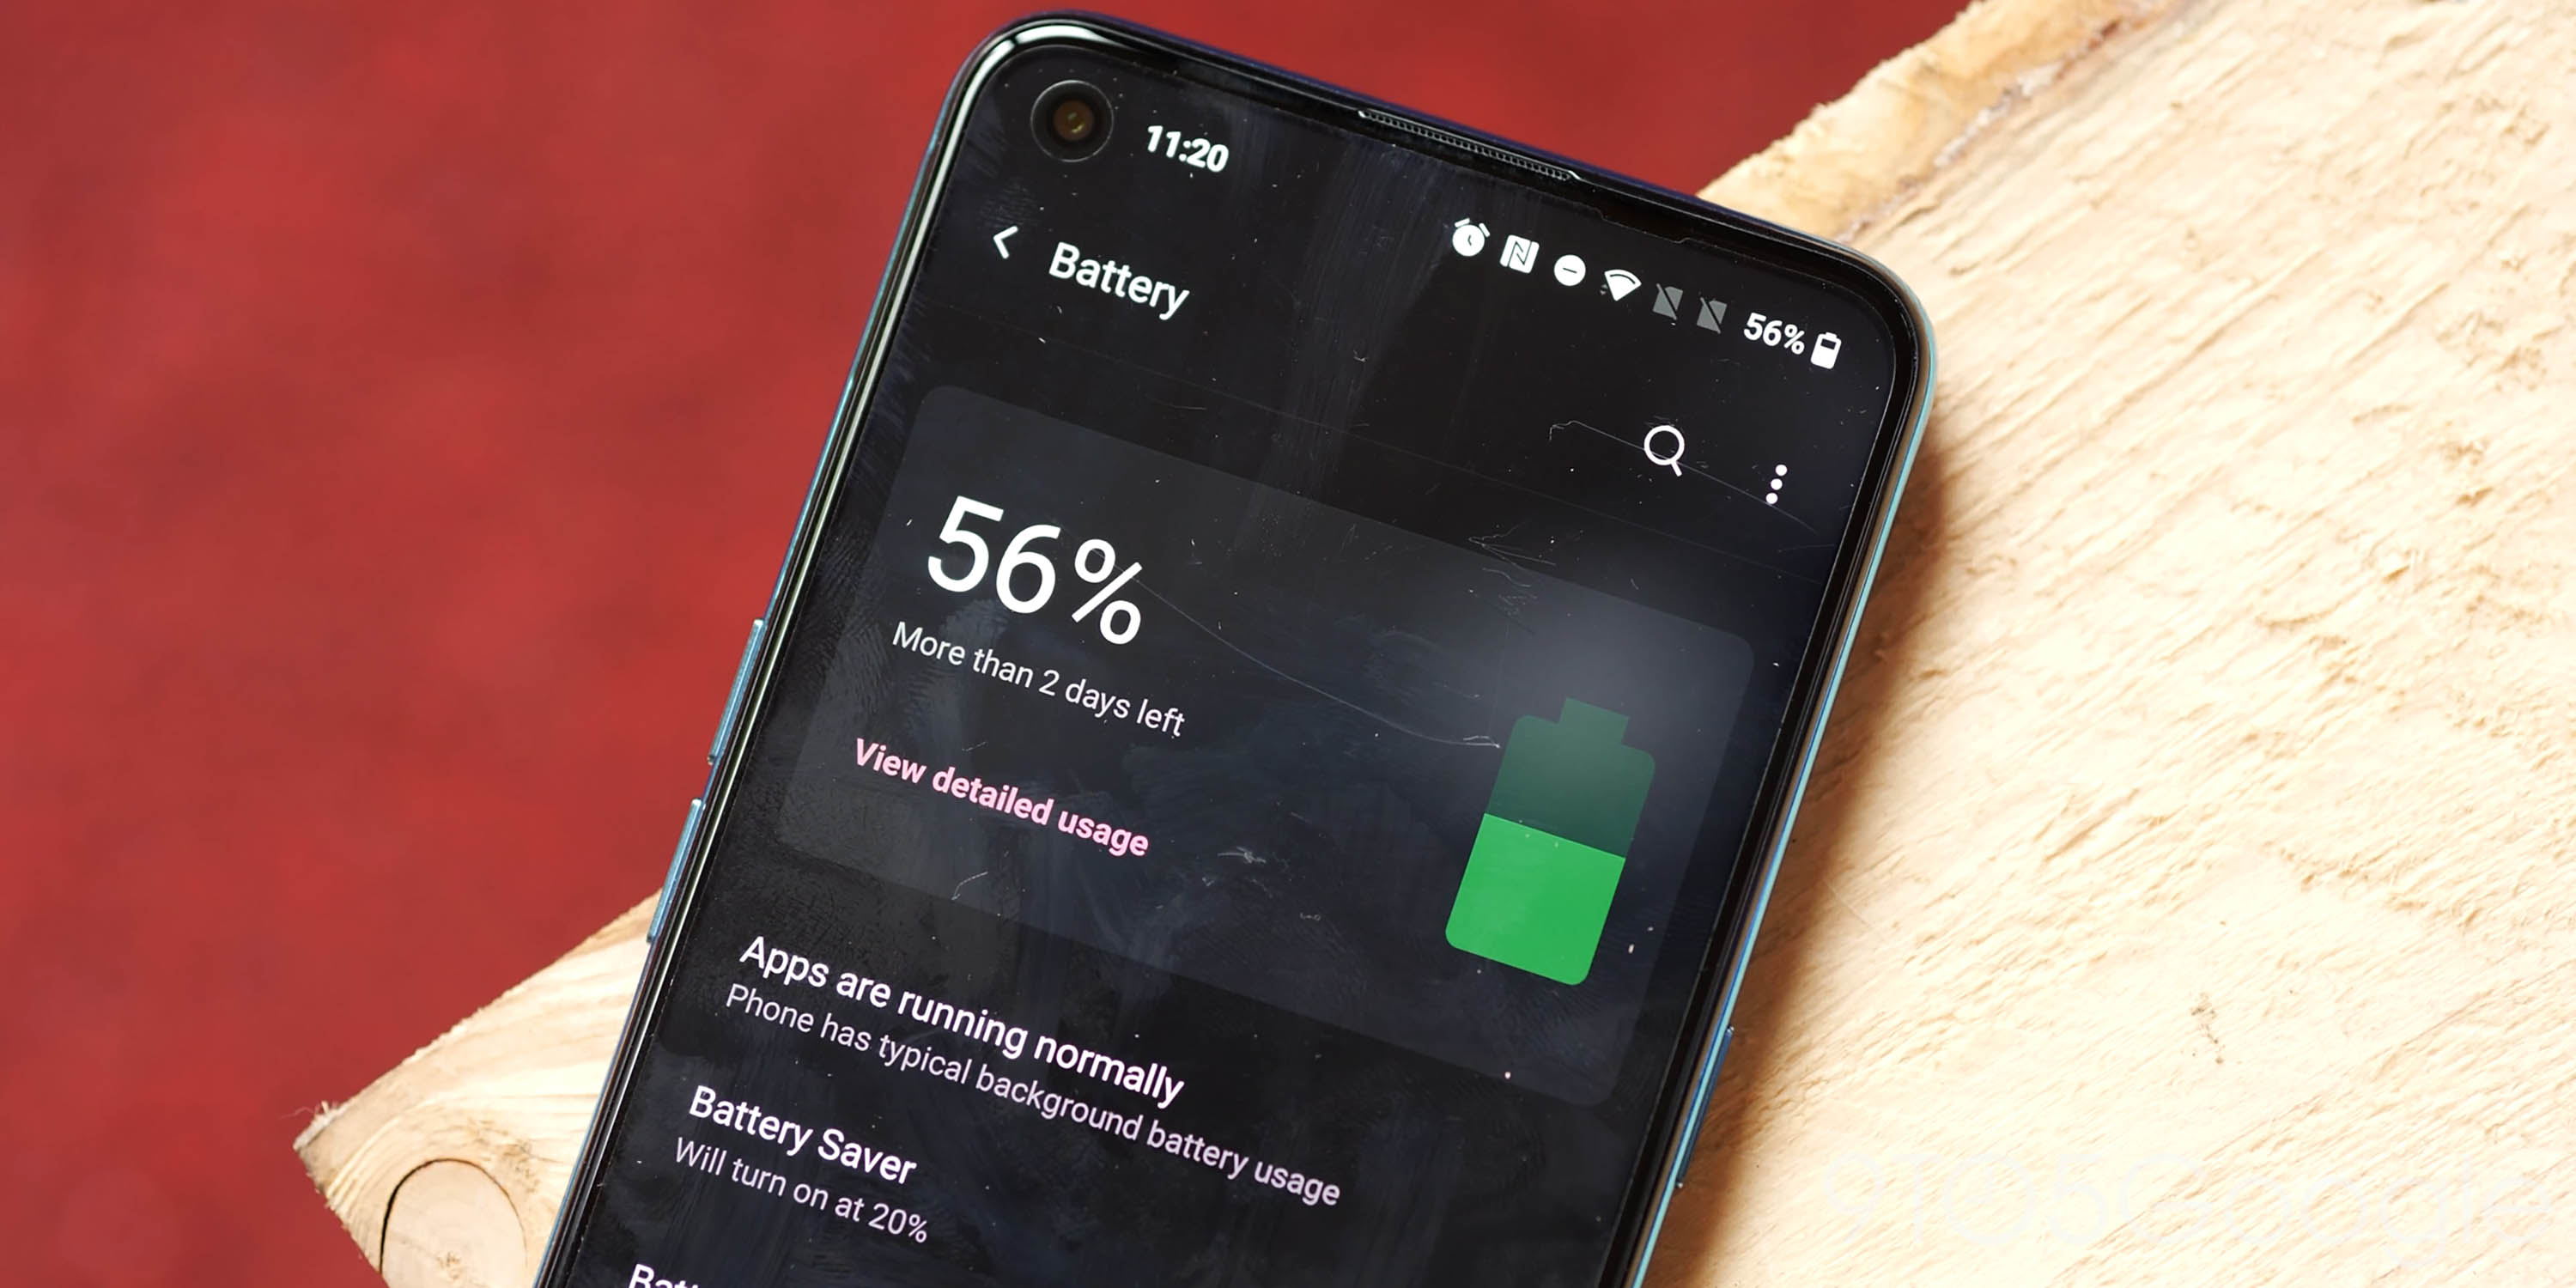 oneplus nord ce 5g - battery life